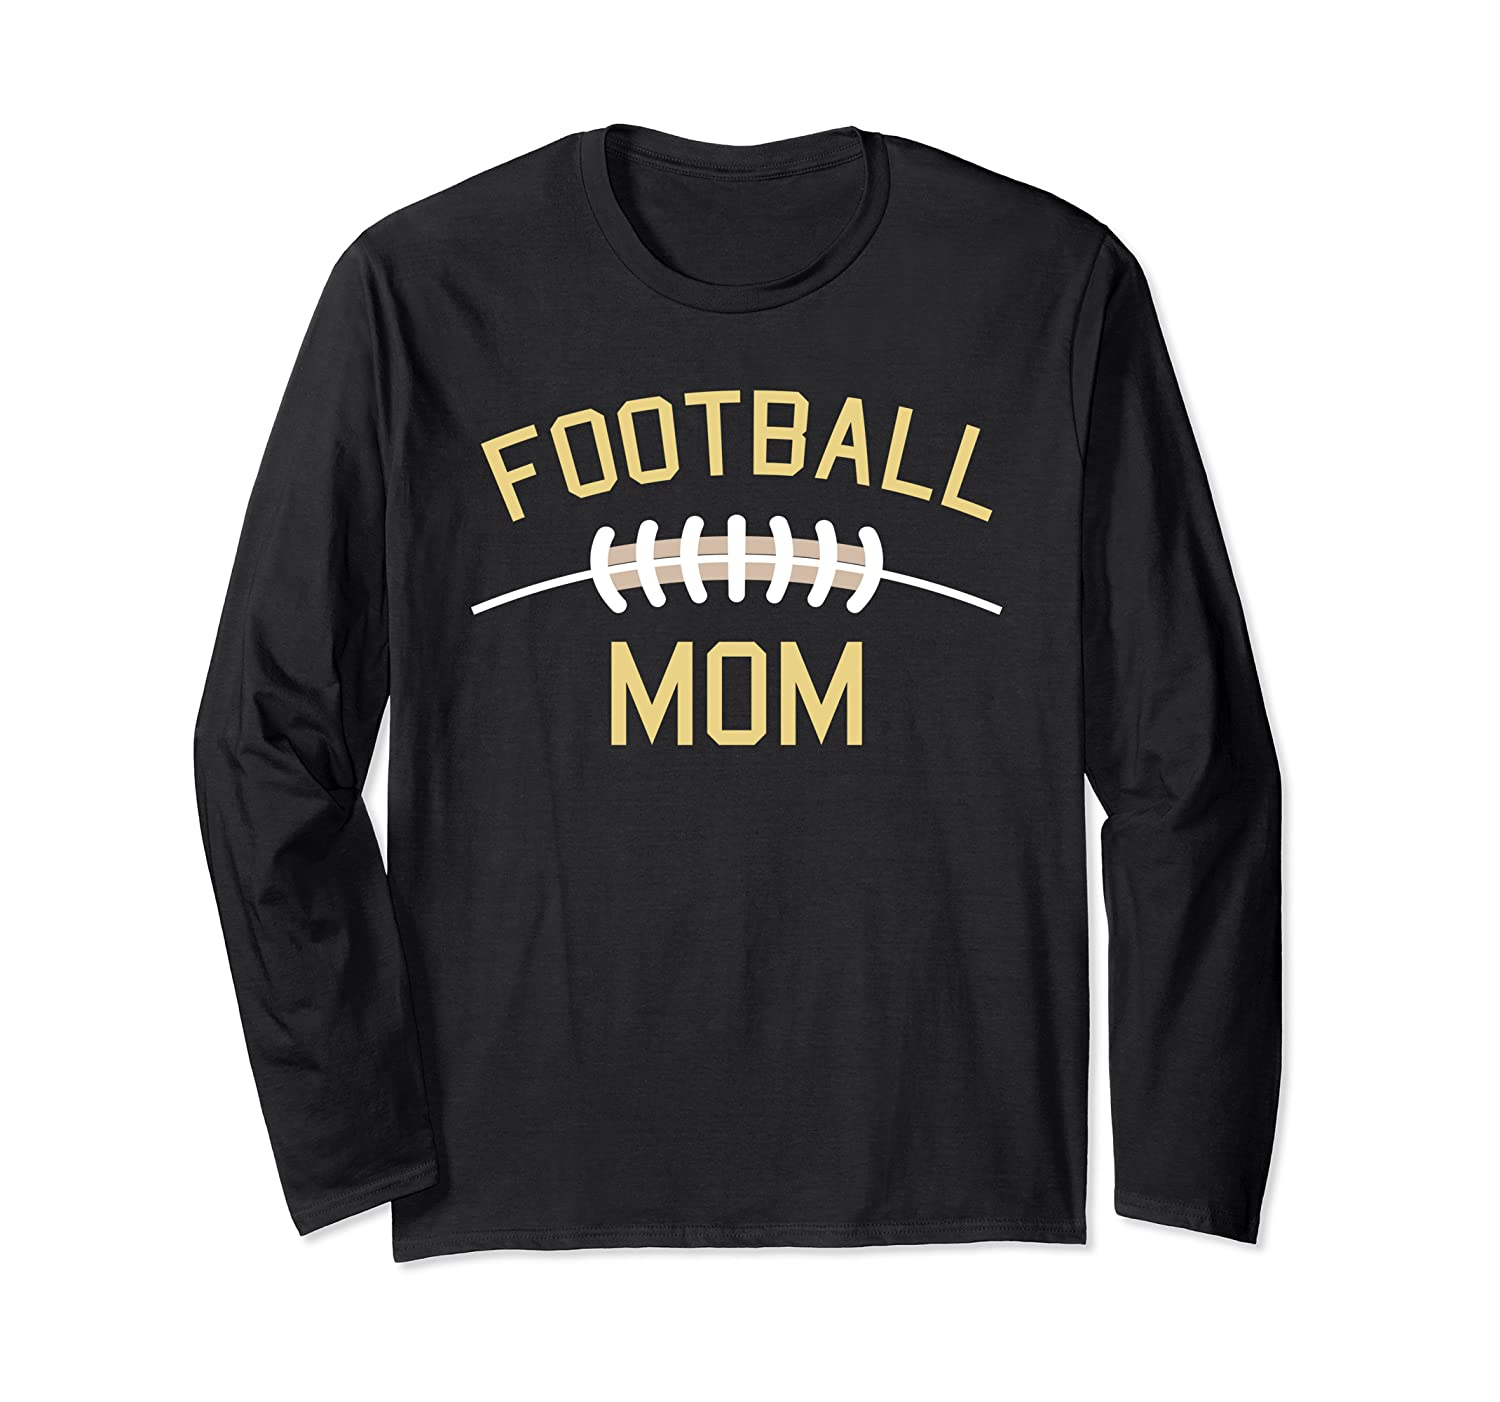 Football Mom I Decorative Leather Football Outfit for Women Long Sleeve T-Shirt-TH